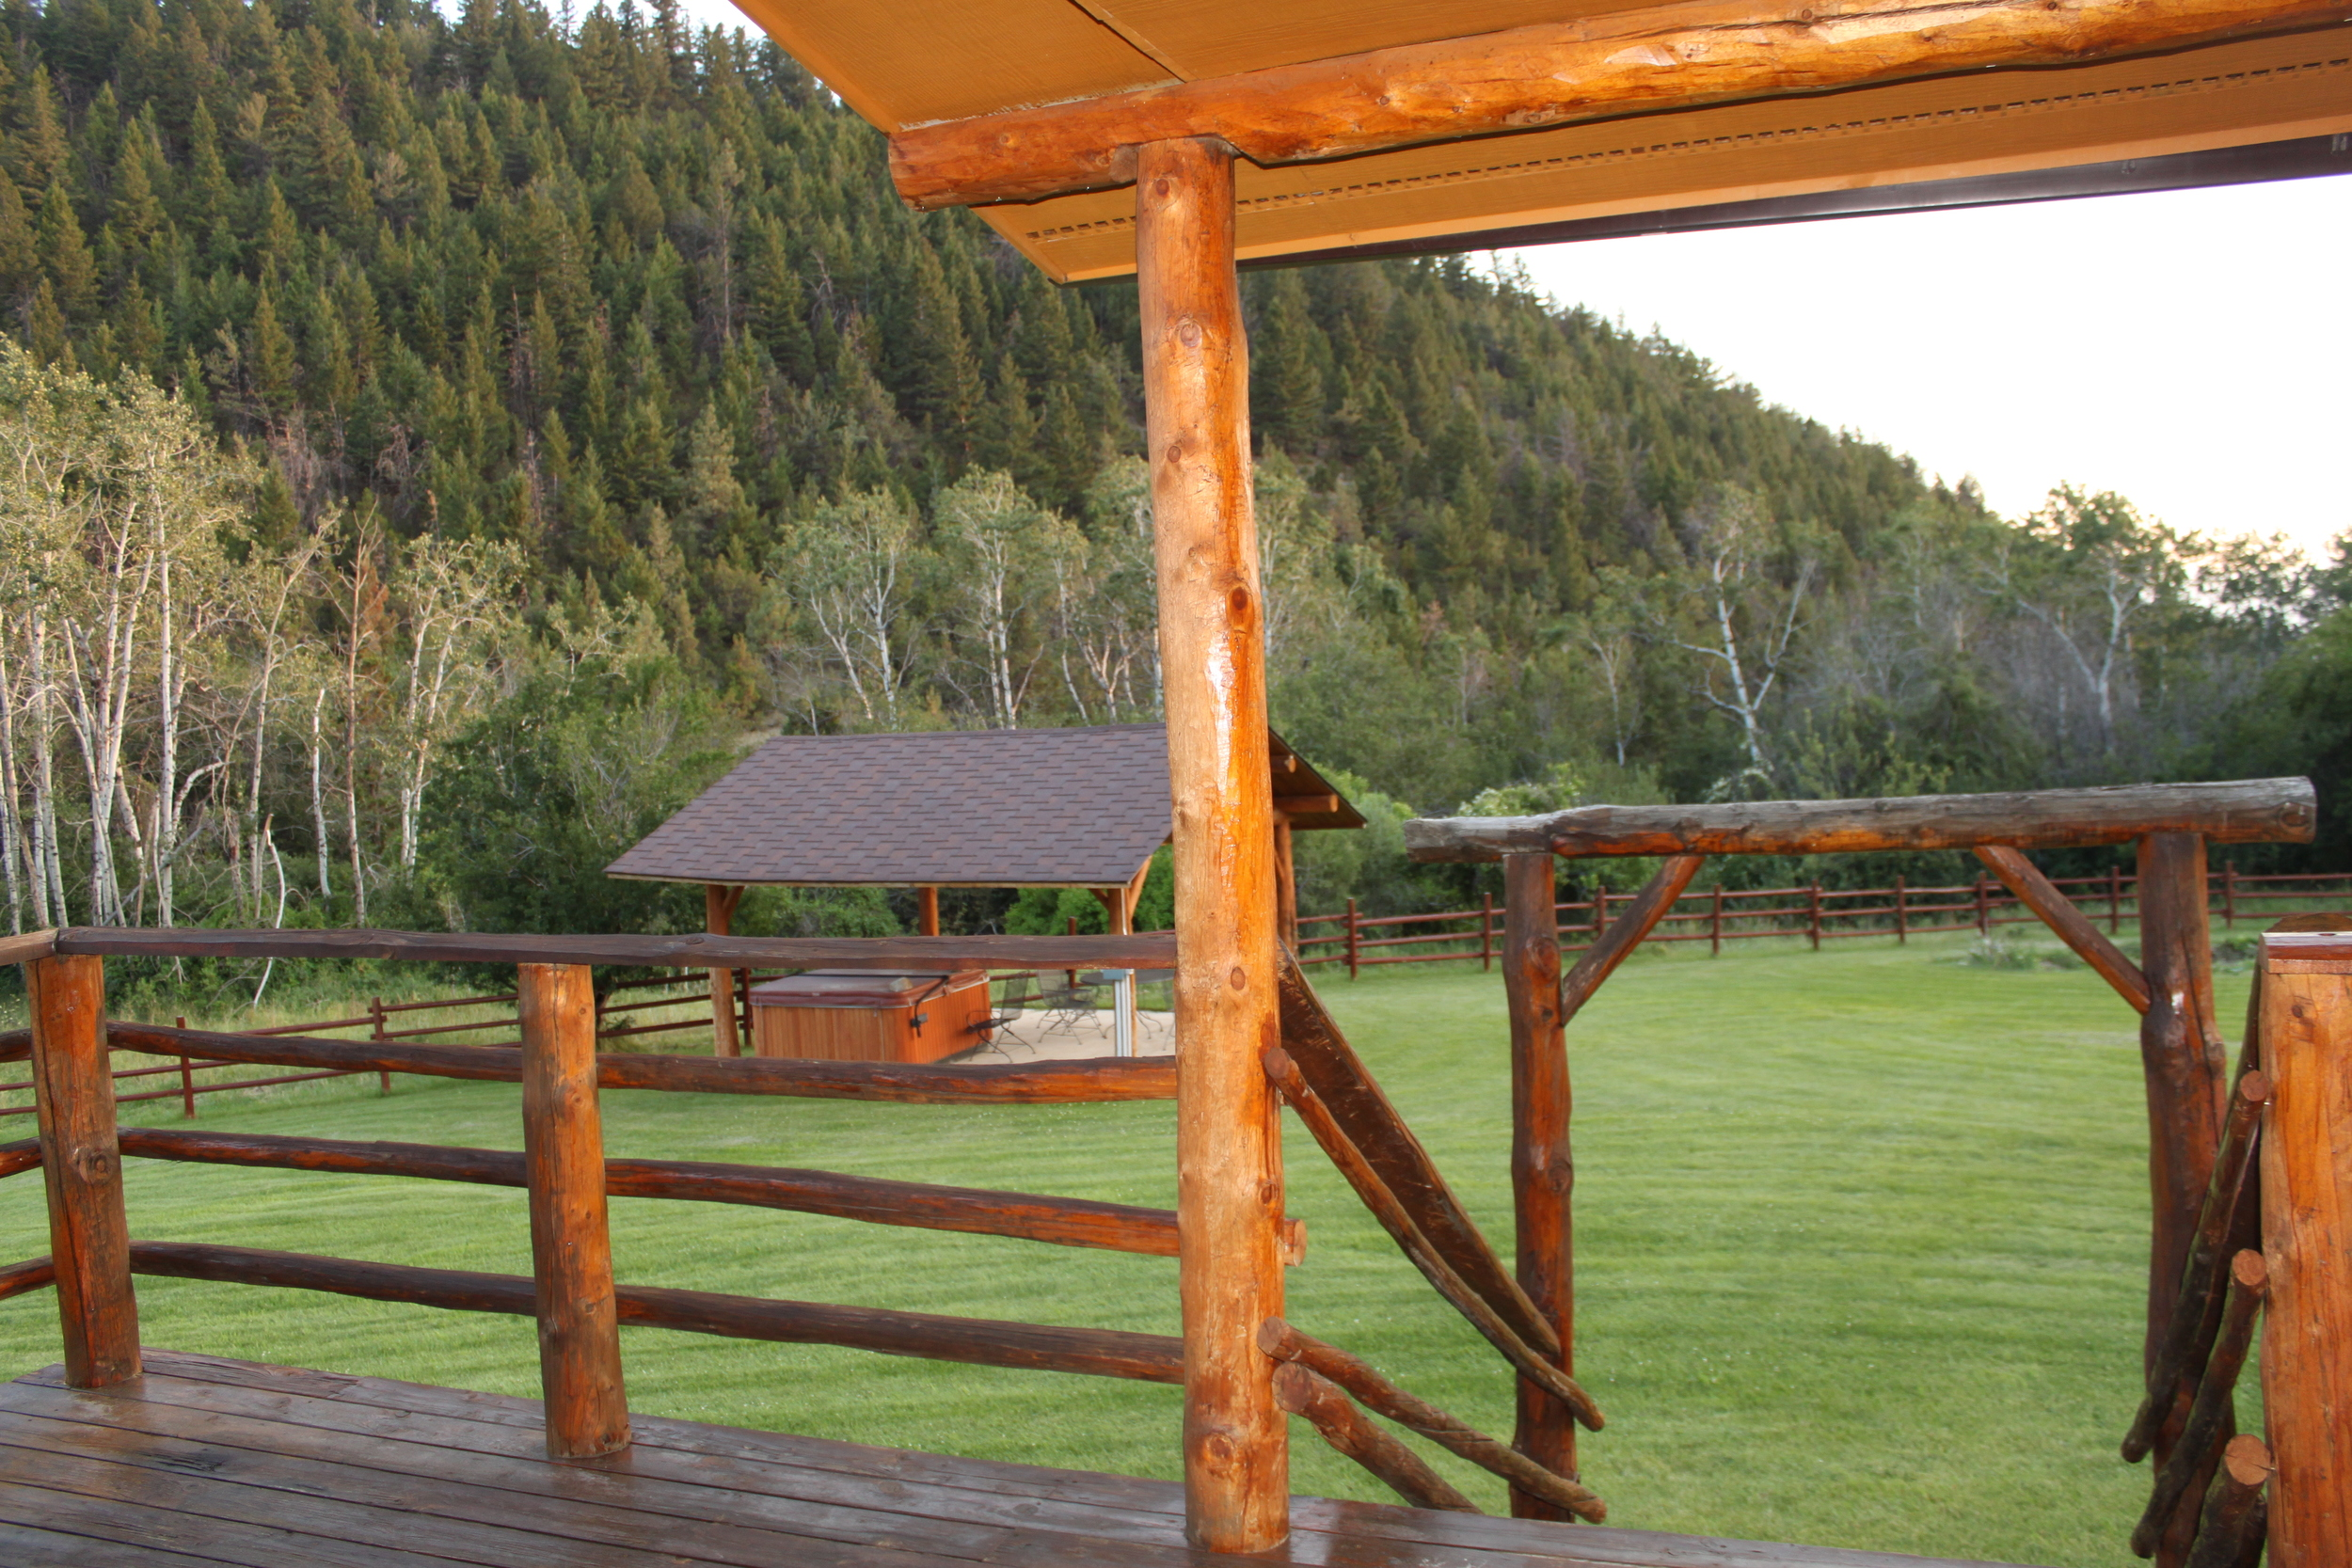 The back porch of the lodge